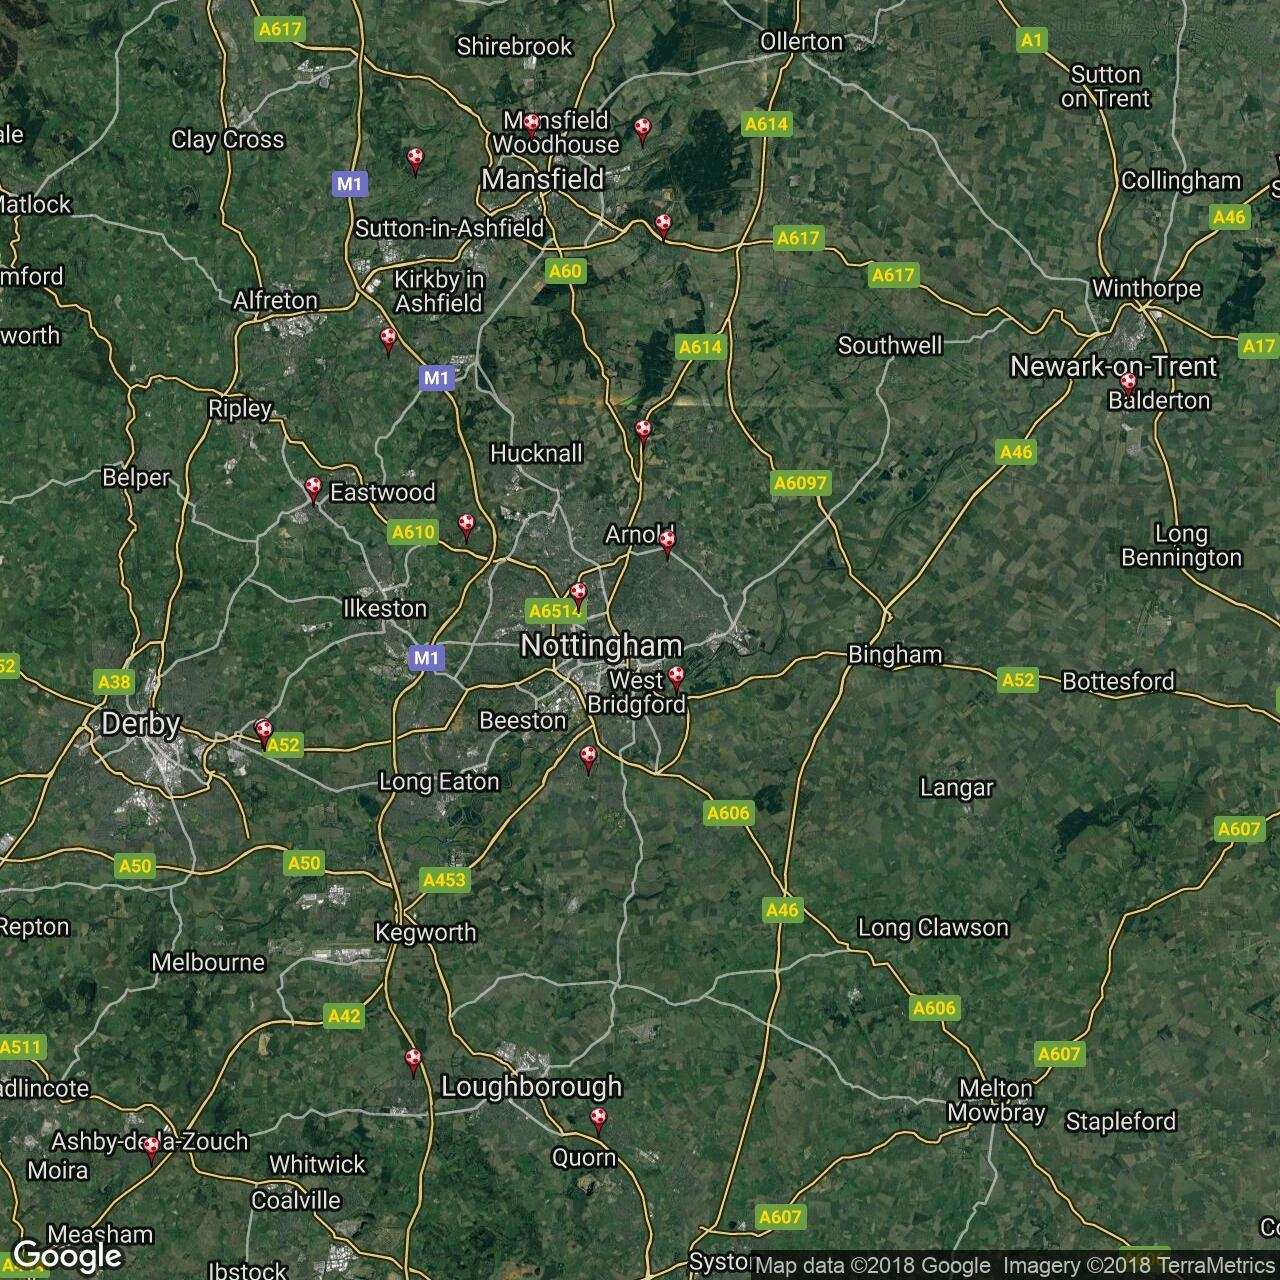 Map Of England Midlands.East Midlands Counties League Football Grounds In England Football